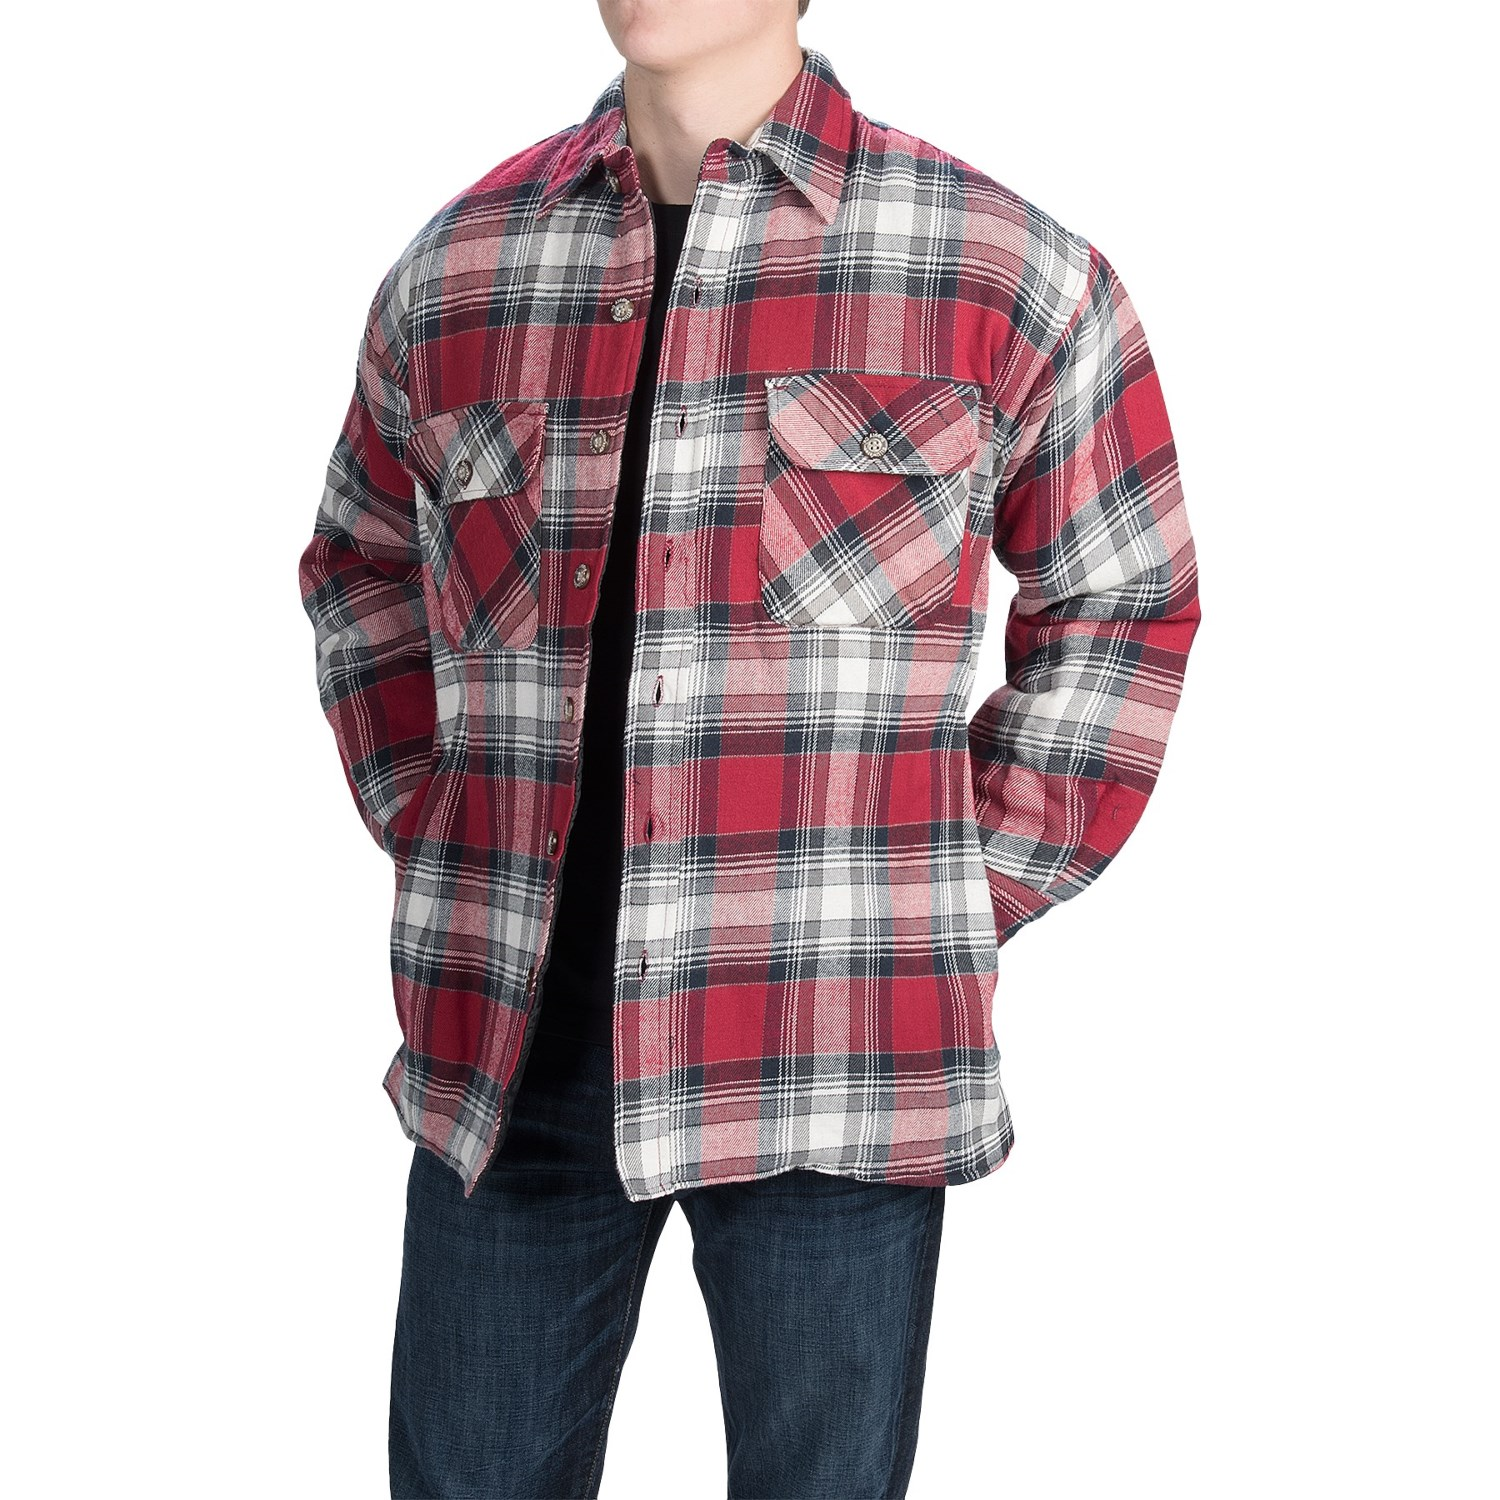 Stillwater supply co plaid shirt jacket for men 9891v for Plaid shirt jacket mens